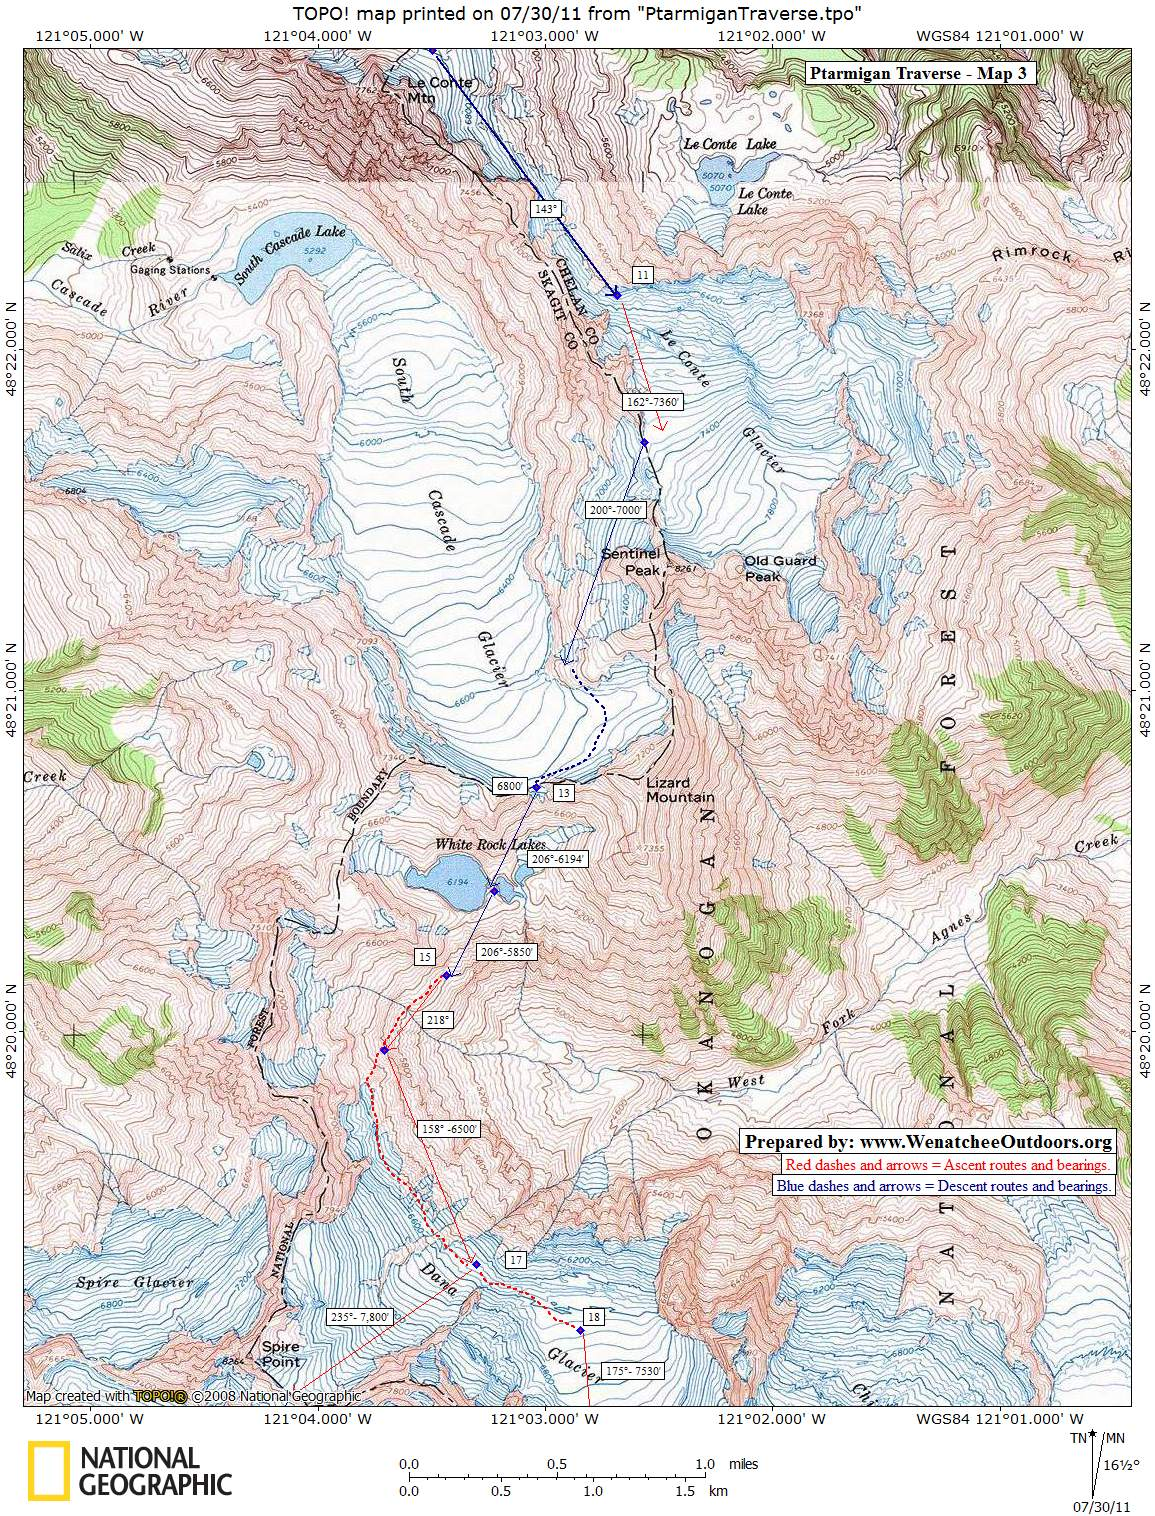 MAP 3: Le Conte Mtn to Spire Point